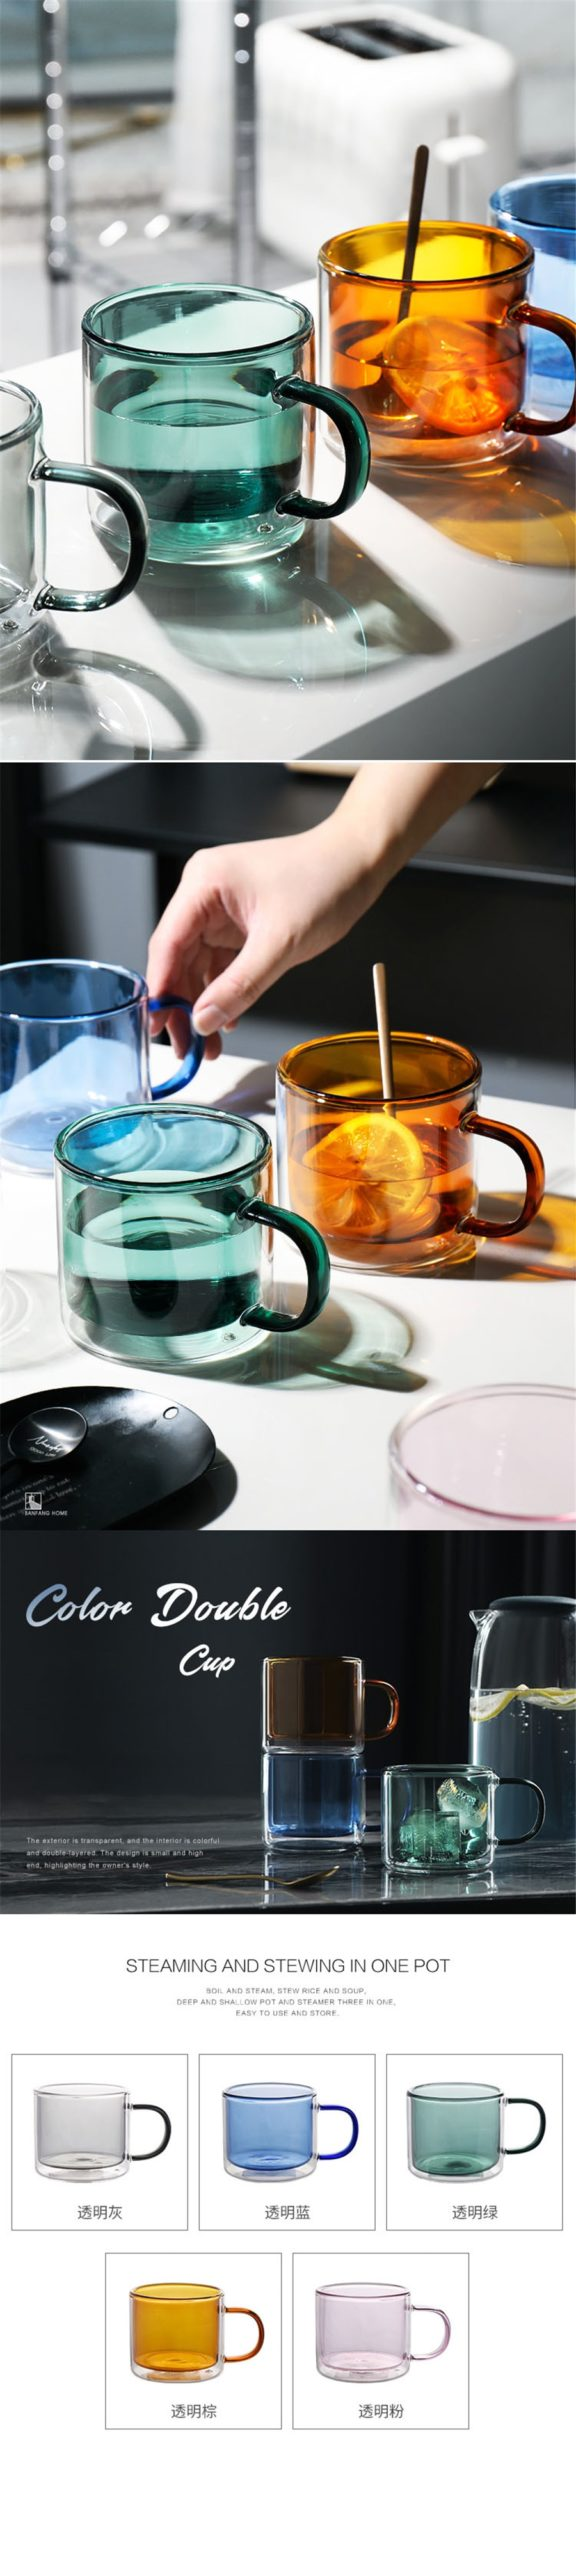 New Heat-resistant Double Wall Glass Cup Espresso Coffee Cup Set Handmade Beer Mug Tea glass Whiskey Glass Handle Cups Drinkware